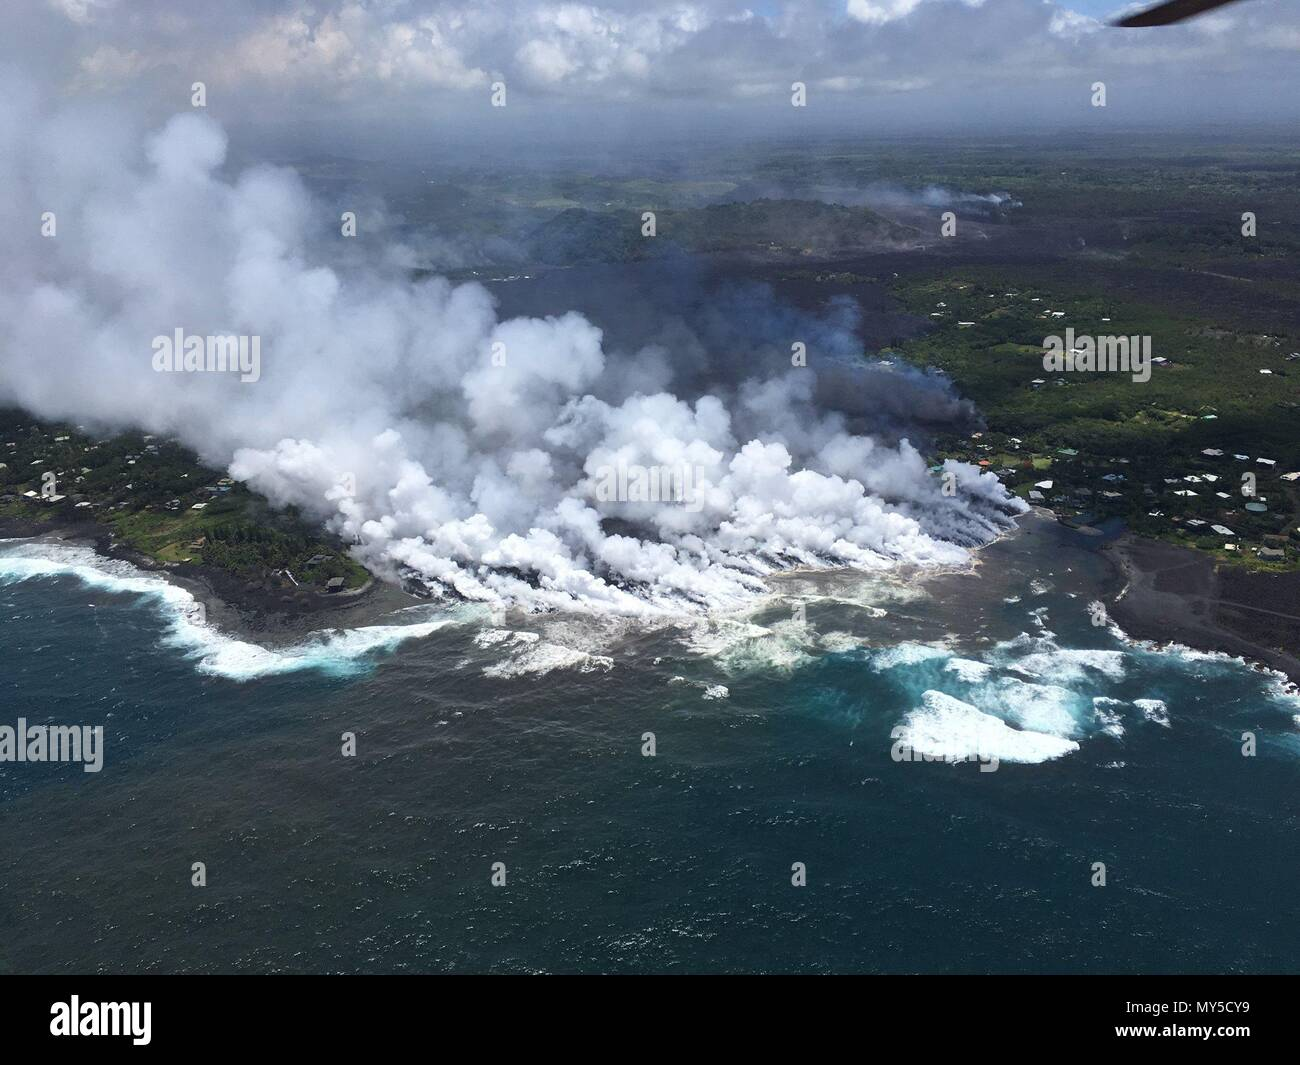 Lava flows into Kapoho Bay destroying forest and homes in the Vacationland area caused by the eruption of the Kilauea volcano June 4, 2018 in Hawaii. The recent eruption continues destroying homes, forcing evacuations and spewing lava and poison gas on the Big Island of Hawaii. - Stock Image